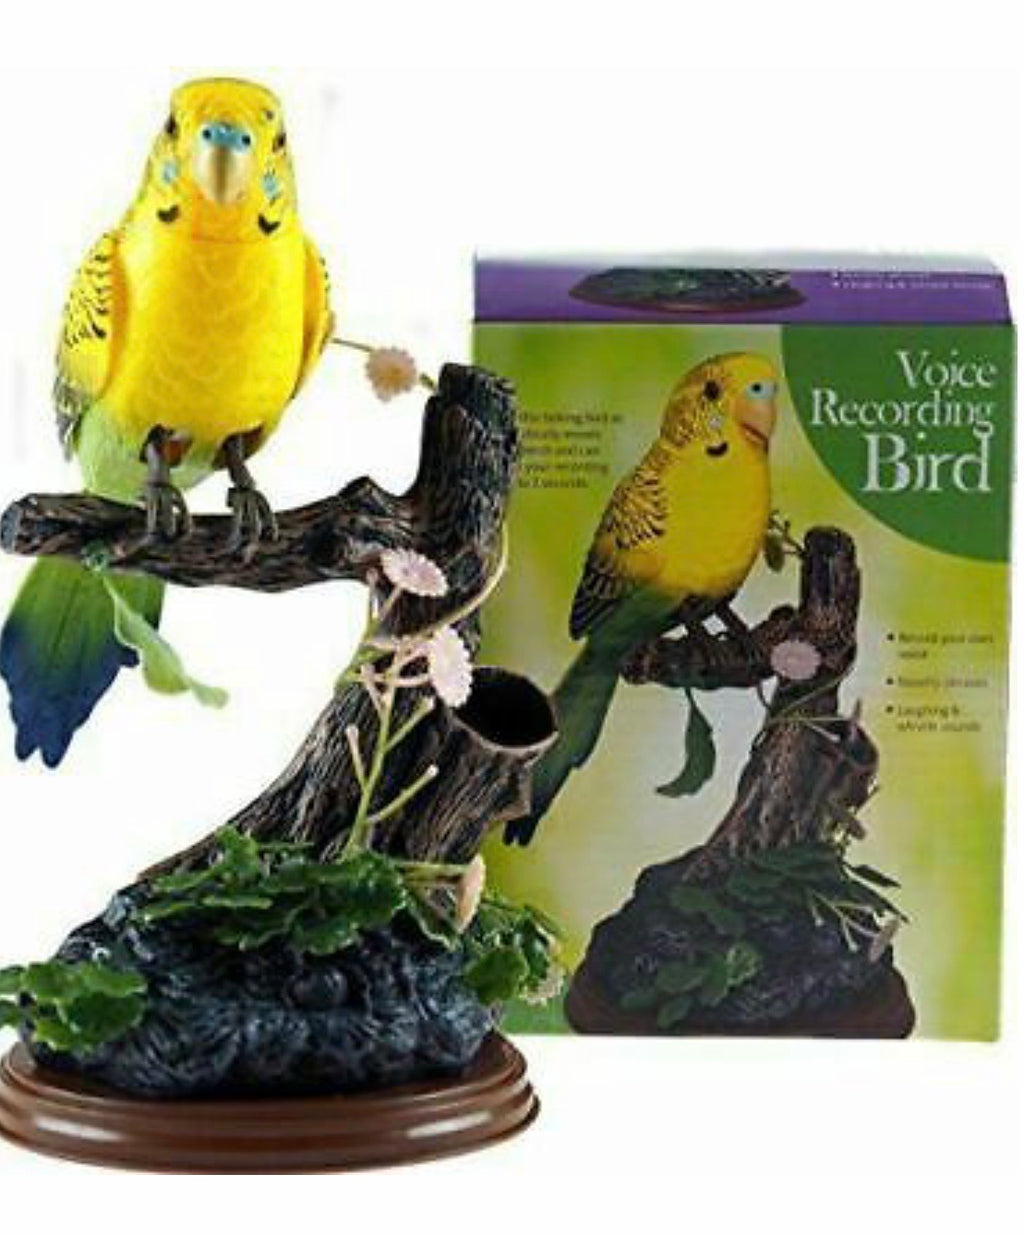 Talk Back Voice Recording Parrot Bird - Novelty Gift